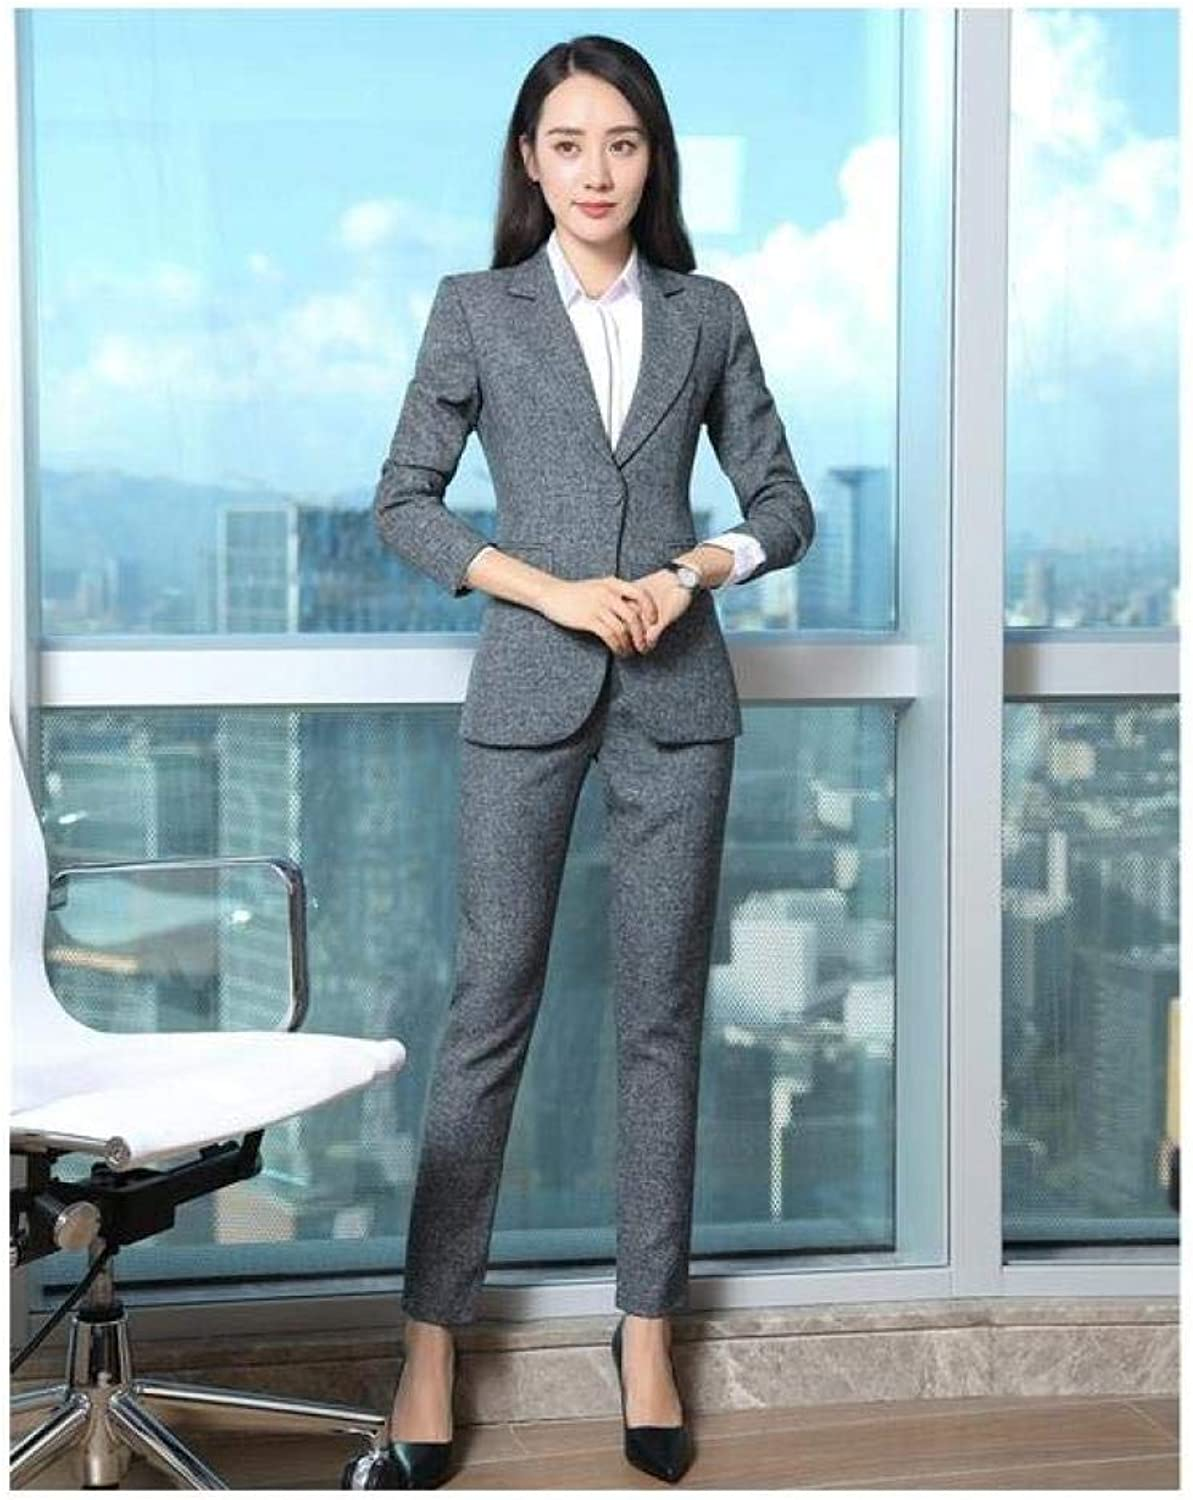 XUBA Ladies Grey Blazer Women Business Suits with Pant and Jacket Sets Elegant Office Uniform Designs OL Style